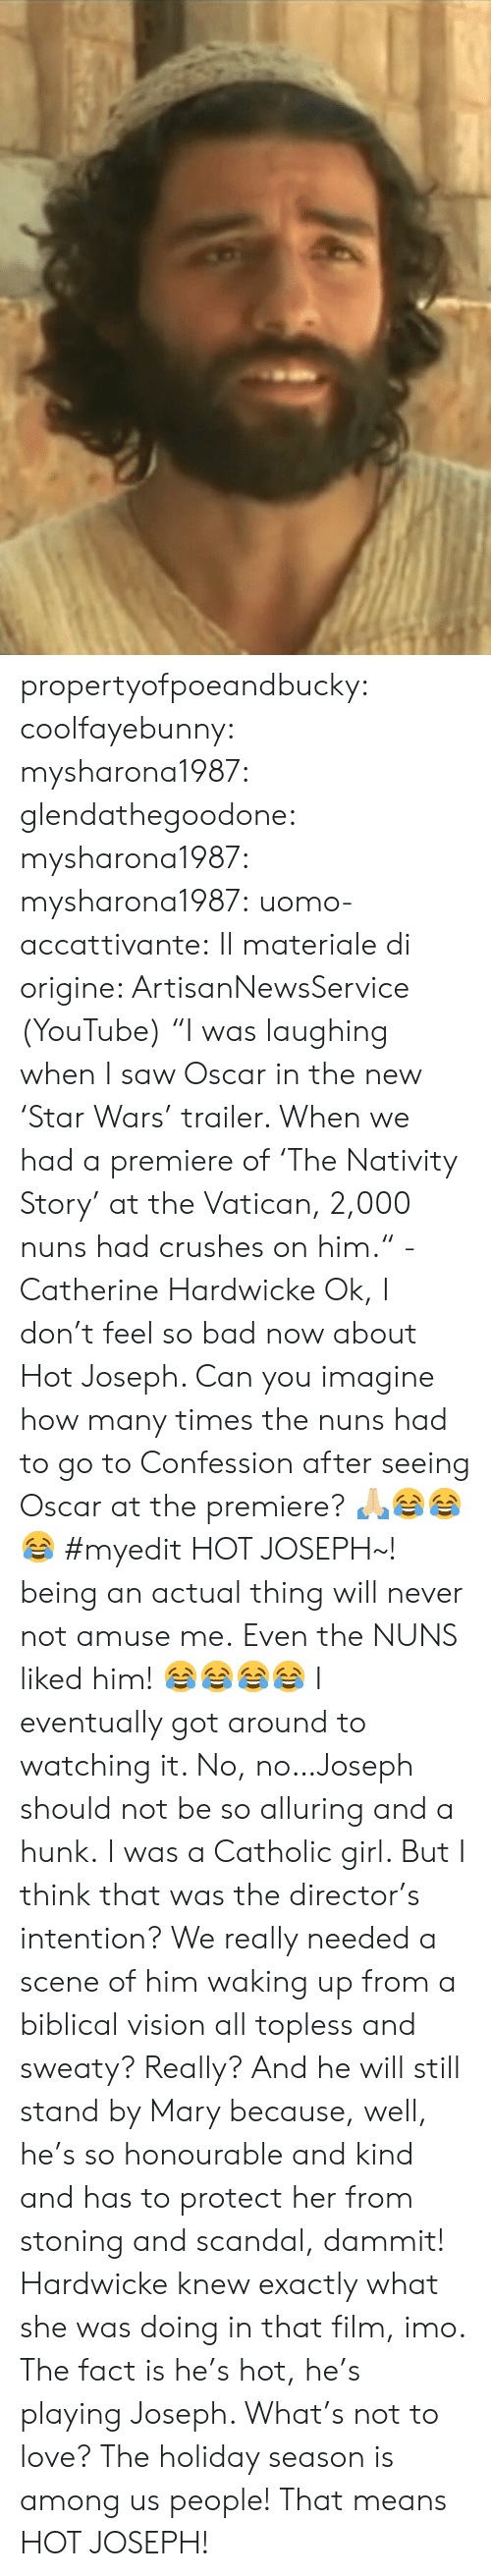 "nativity: propertyofpoeandbucky: coolfayebunny:  mysharona1987:   glendathegoodone:  mysharona1987:   mysharona1987:  uomo-accattivante:  Il materiale di origine: ArtisanNewsService (YouTube)  ""I was laughing when I saw Oscar in the new 'Star Wars' trailer. When we had a premiere of 'The Nativity Story' at the Vatican, 2,000 nuns had crushes on him."" - Catherine Hardwicke  Ok, I don't feel so bad now about Hot Joseph. Can you imagine how many times the nuns had to go to Confession after seeing Oscar at the premiere? 🙏🏼😂😂😂  #myedit  HOT JOSEPH~! being an actual thing will never not amuse me.  Even the NUNS liked him!   😂😂😂😂  I eventually got around to watching it. No, no…Joseph should not be so alluring and a hunk. I was a Catholic girl.    But I think that was the director's intention? We really needed a scene of him waking up from a biblical vision all topless and sweaty? Really? And he will still stand by Mary because, well, he's so honourable and kind and has to protect her from stoning and scandal, dammit! Hardwicke knew exactly what she was doing in that film, imo.   The fact is he's hot, he's playing Joseph. What's not to love?  The holiday season is among us people! That means HOT JOSEPH!"